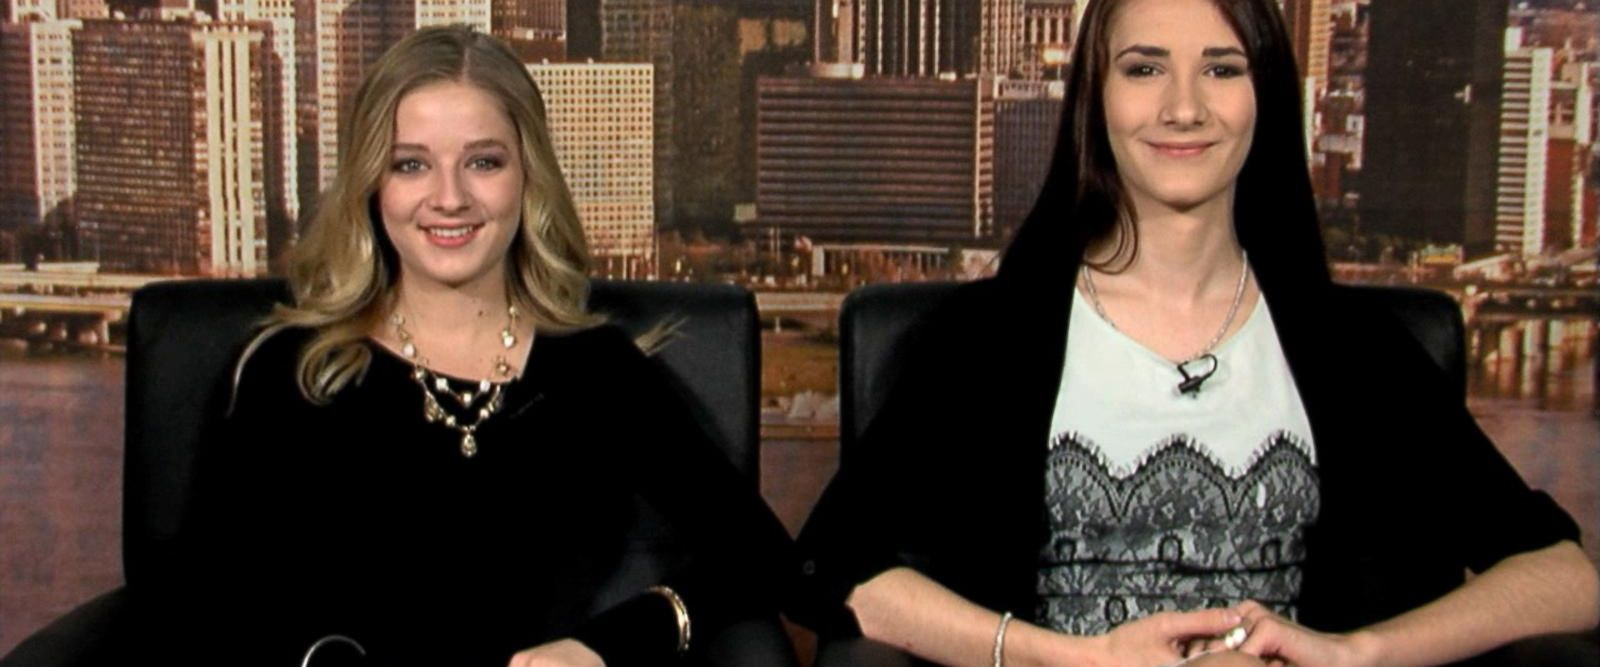 VIDEO: Jackie Evancho defends sister's transgender rights in call for meeting with President Trump